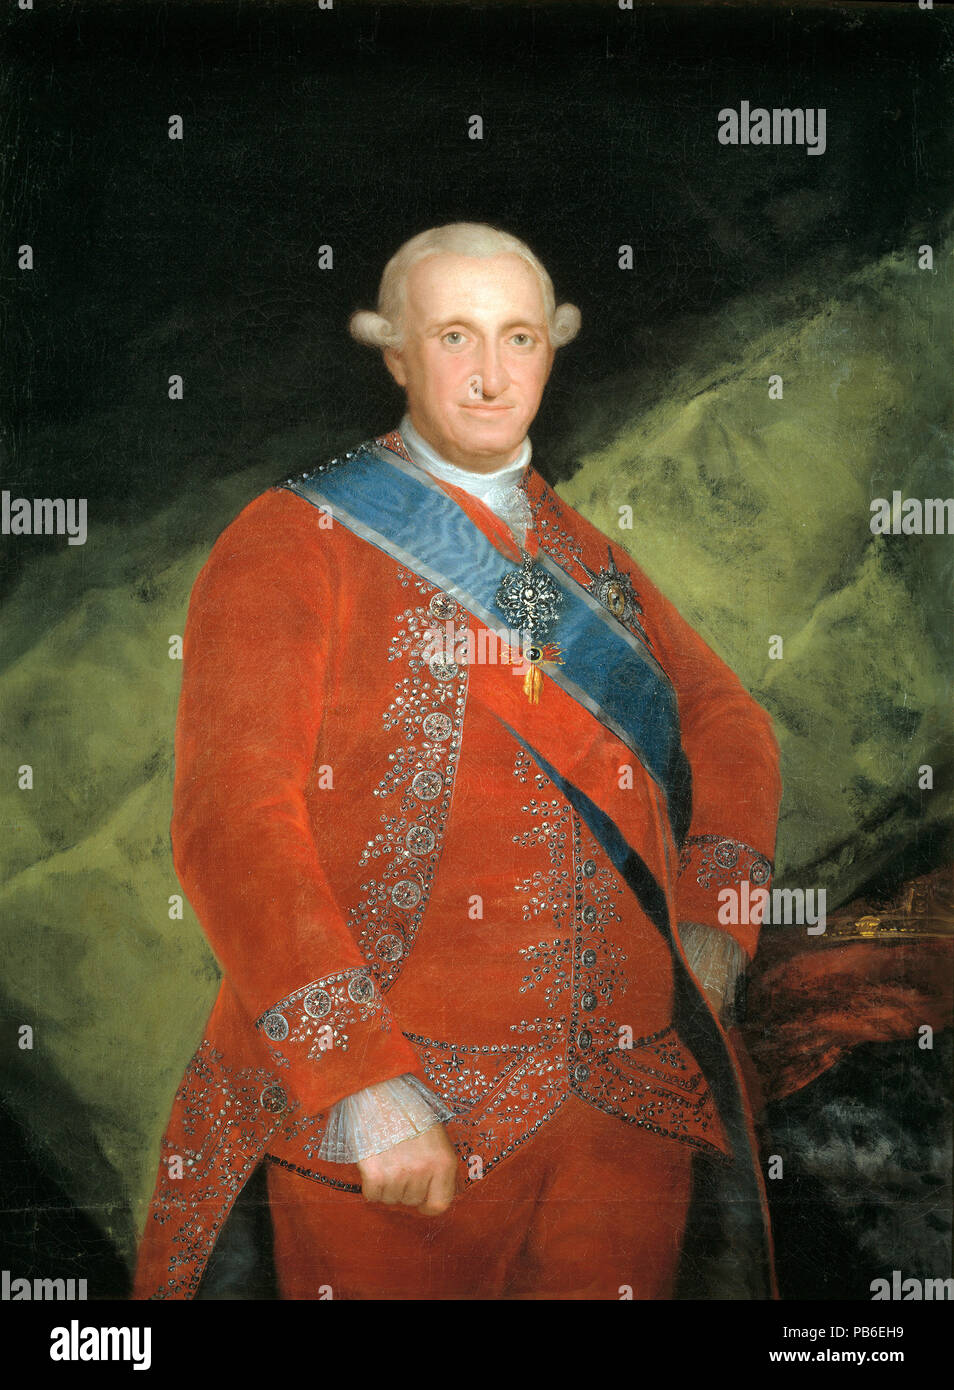 Charles IV (1748 – 1819) King of Spain from 1788 until 1808 - Stock Image